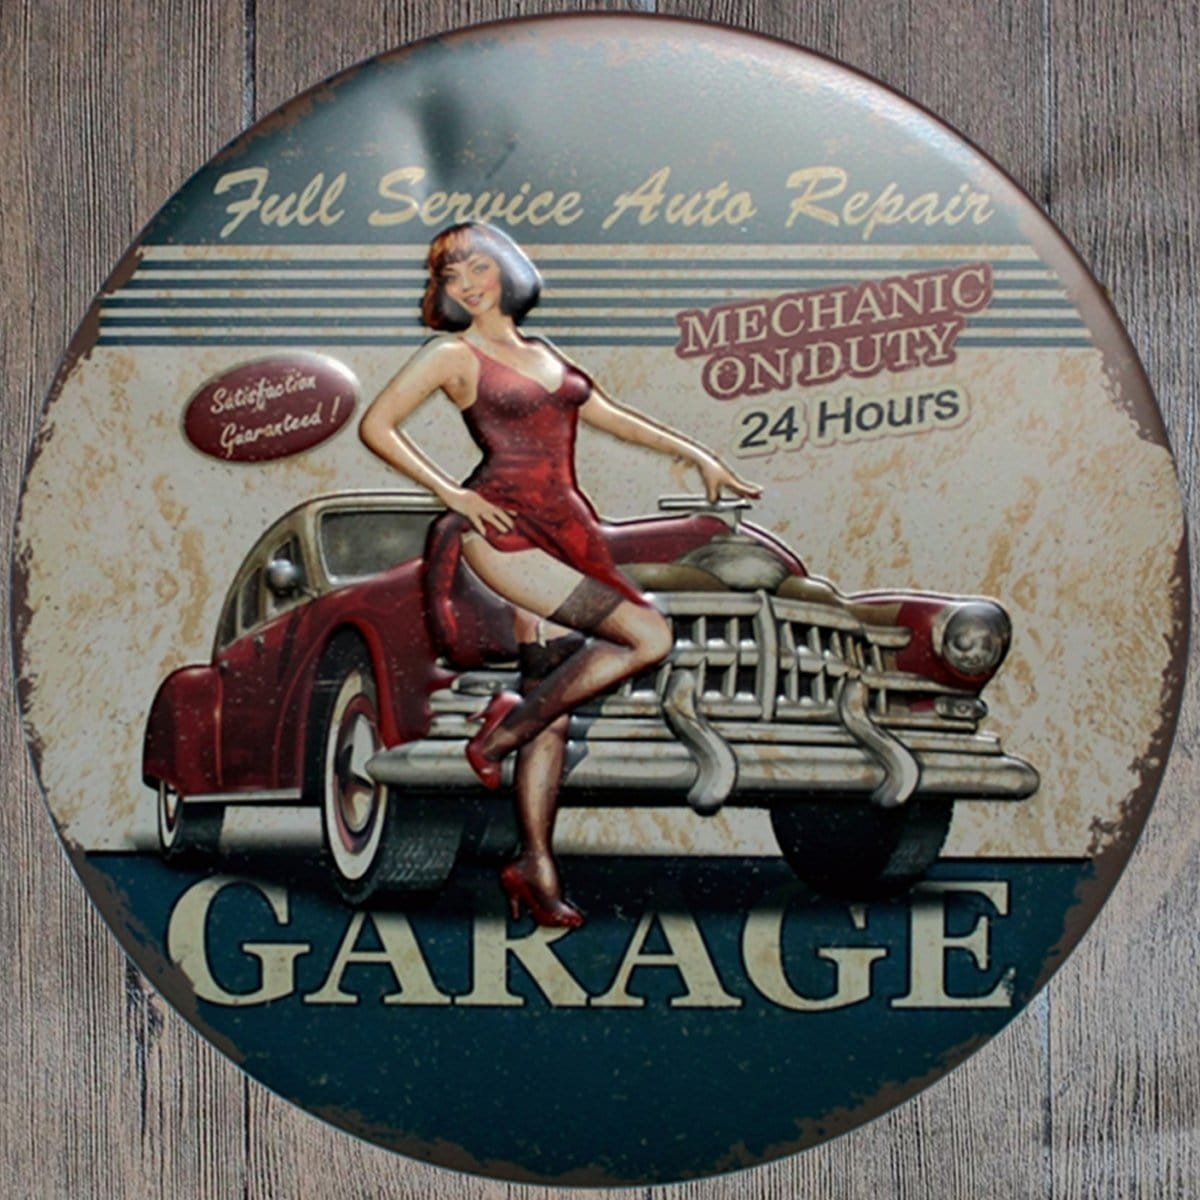 Garage Mechanic On Duty Round Embossed Metal Tin Sign Poster